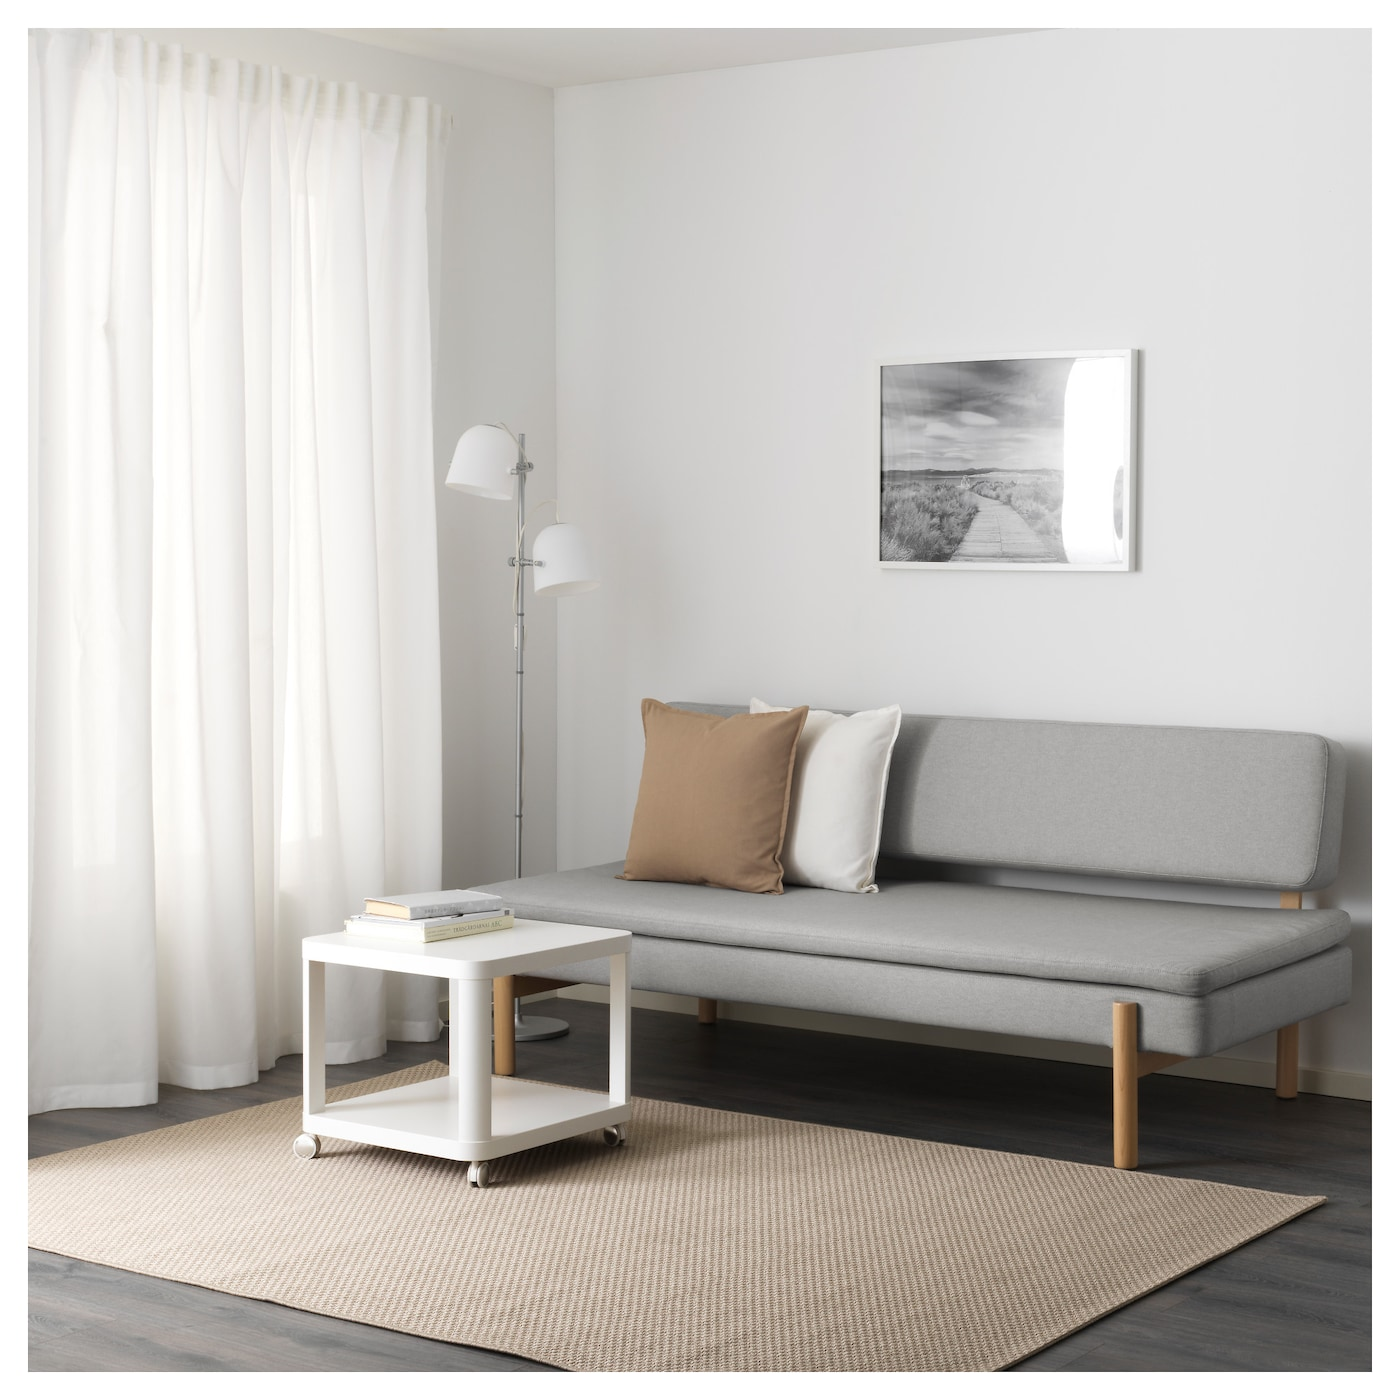 IKEA YPPERLIG three-seat sofa-bed